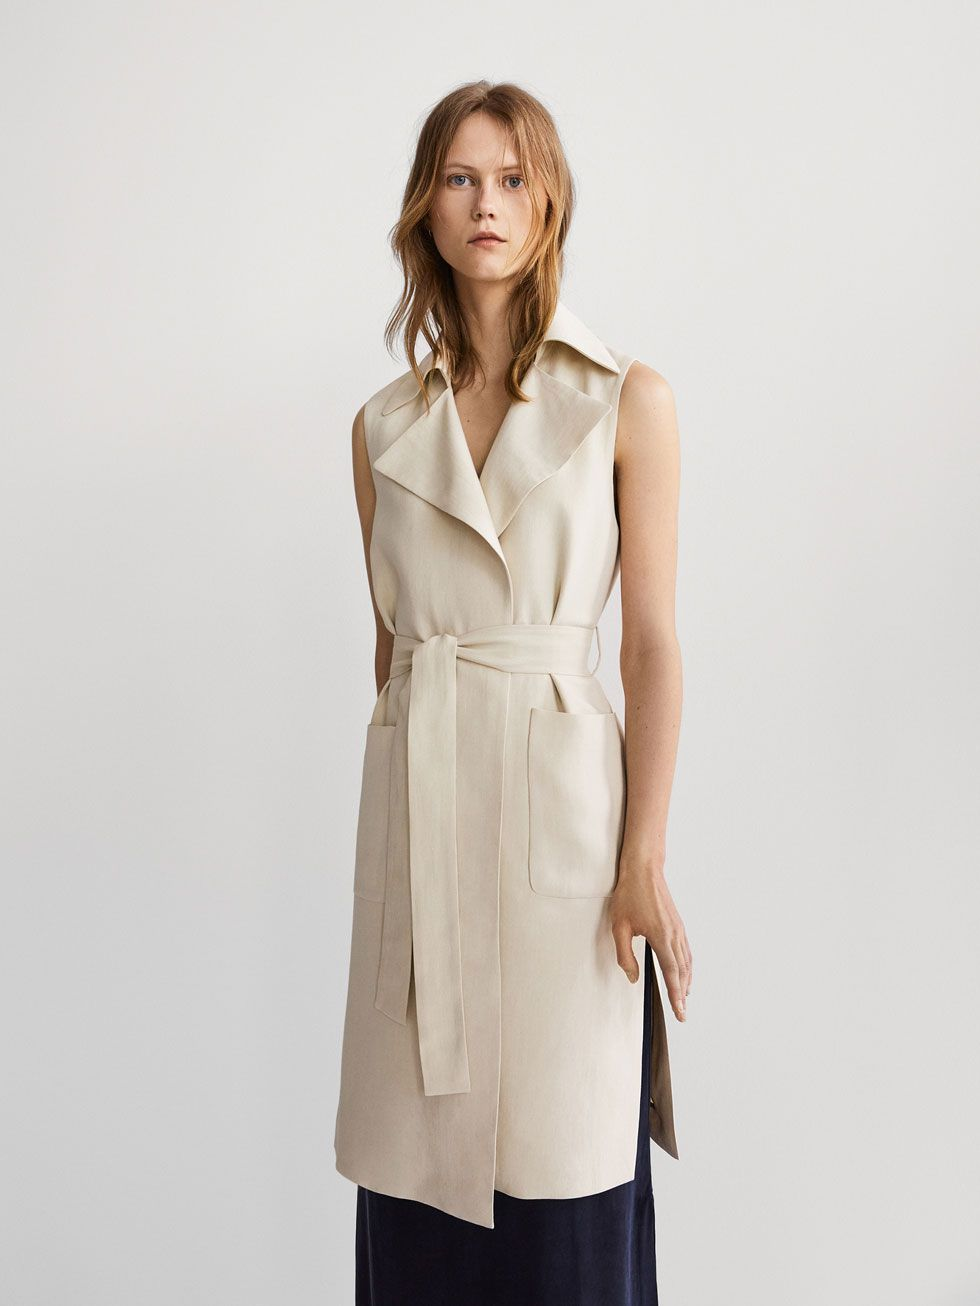 448e280b54b3 FLOWING LINEN WAISTCOAT WITH TIE-UP DETAIL - Women - Massimo Dutti ...